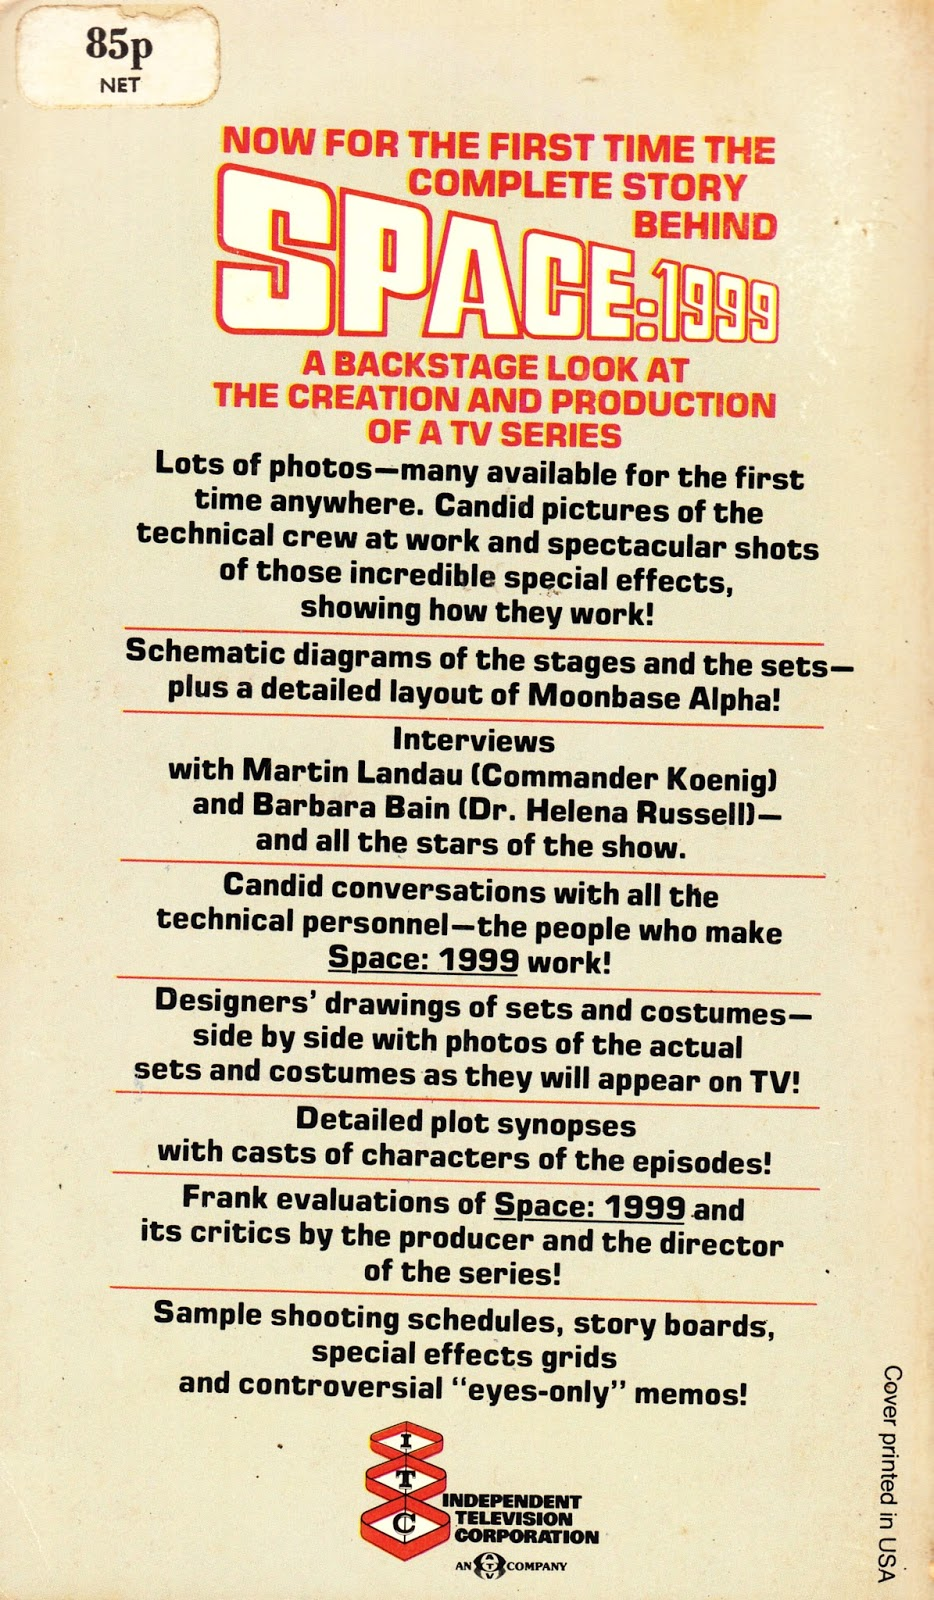 the making of space 1999 tim heald pdf